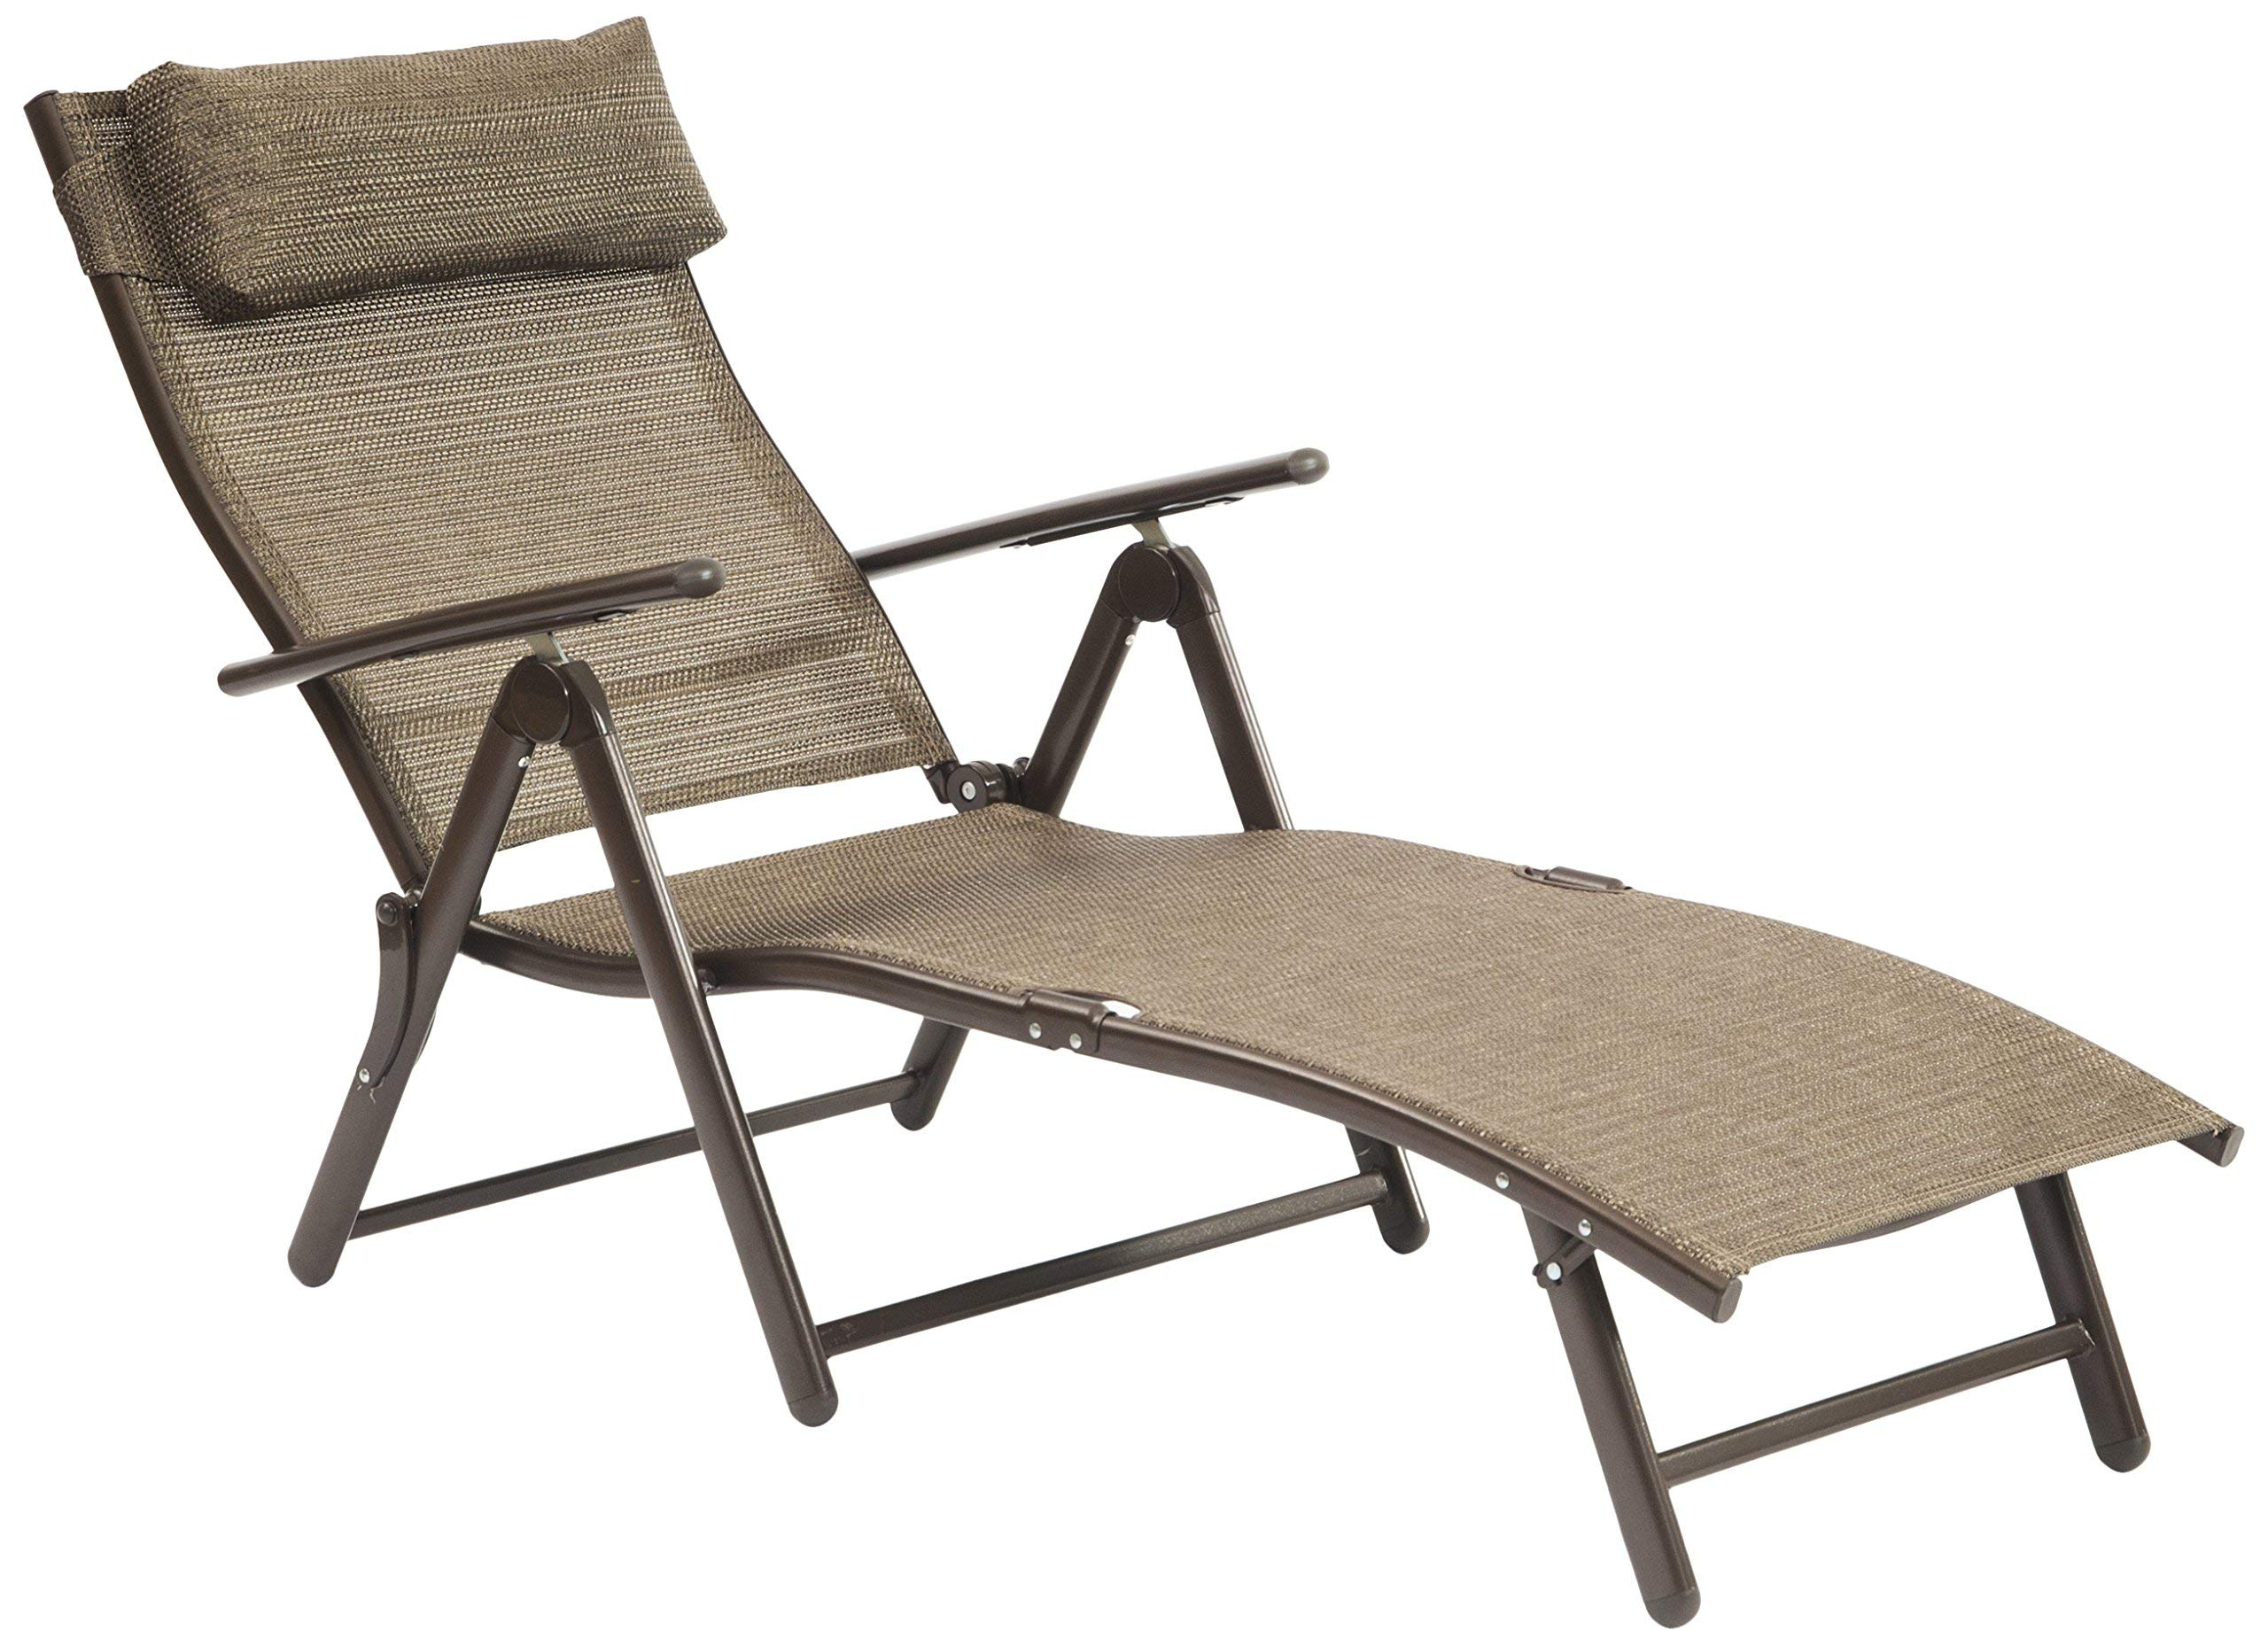 SunTime GF05014USA Metal Sunlounger Outdoor Lounge Chair, Bronze (Renewed) by SunTime